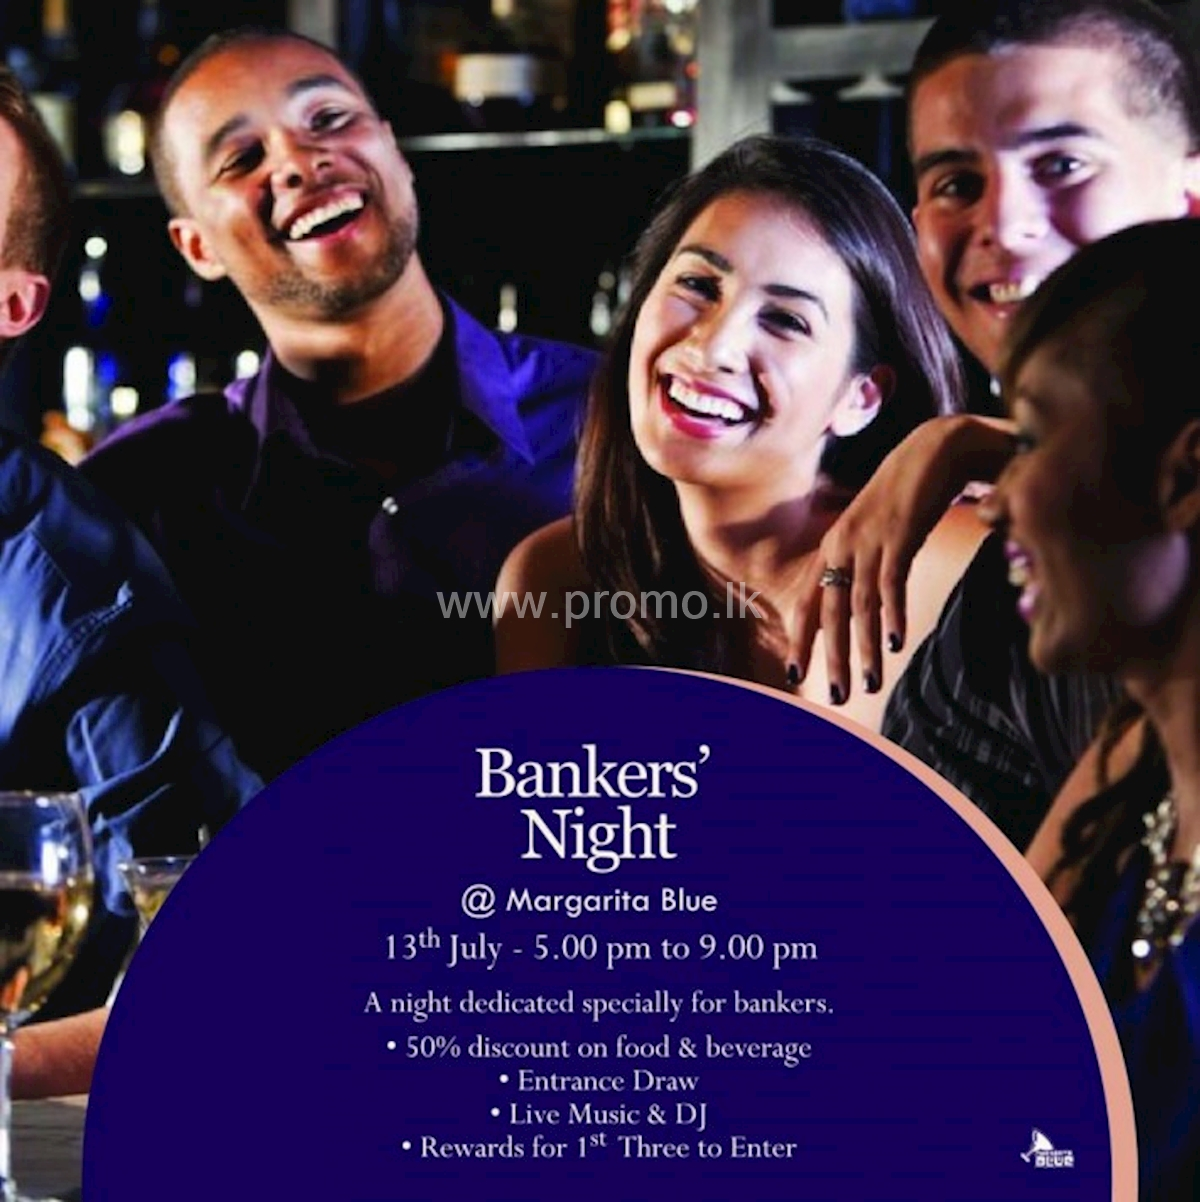 Bankers' Night